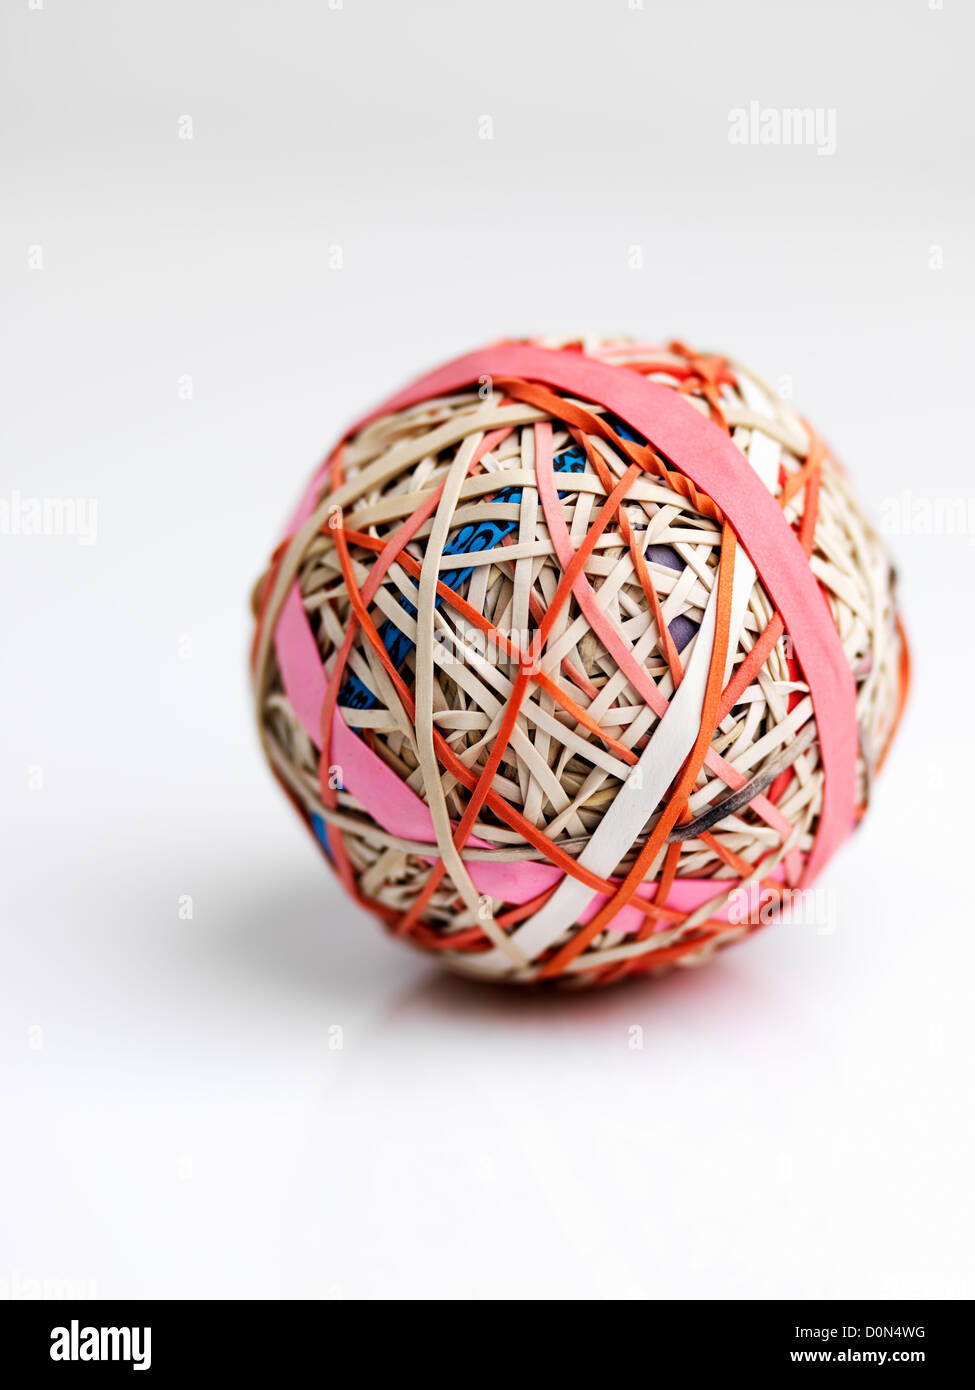 rubber band ball, ball made up of rubber bands wound over each other Stock Photo